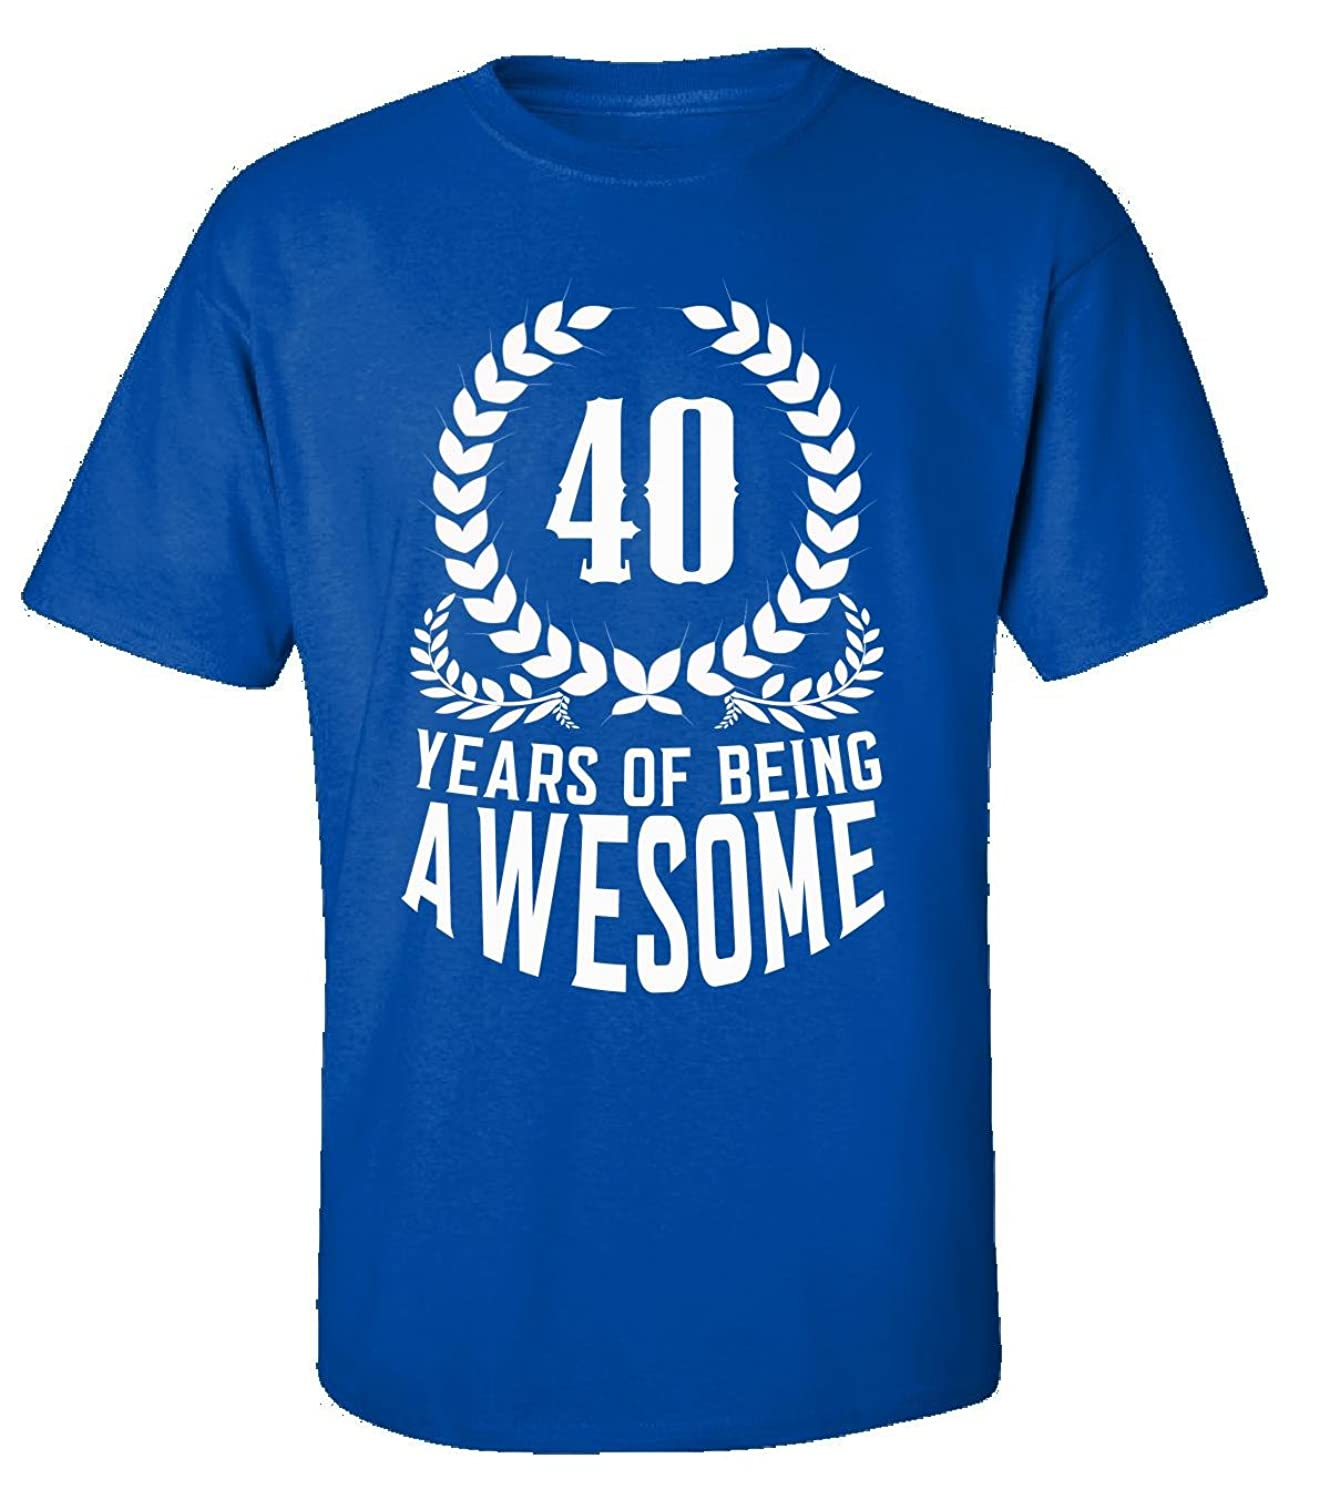 40th Birthday Gift For Men Woman 40 Years Of Being Awesome - Adult Shirt